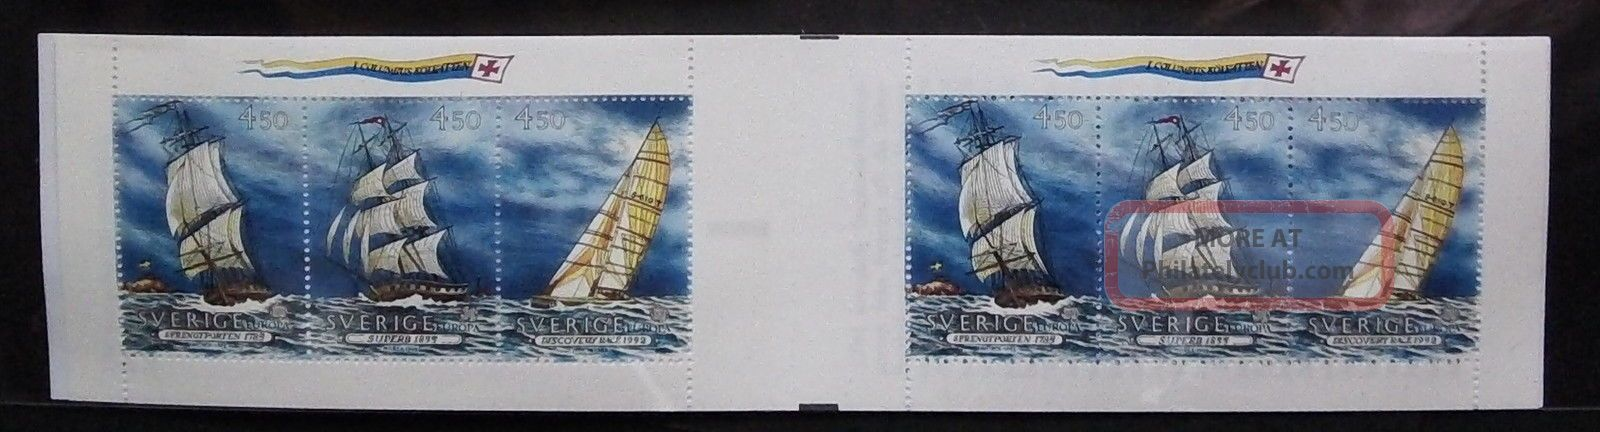 Sweden 1992 Europa - Sailing Ships Booklet. . Transportation photo